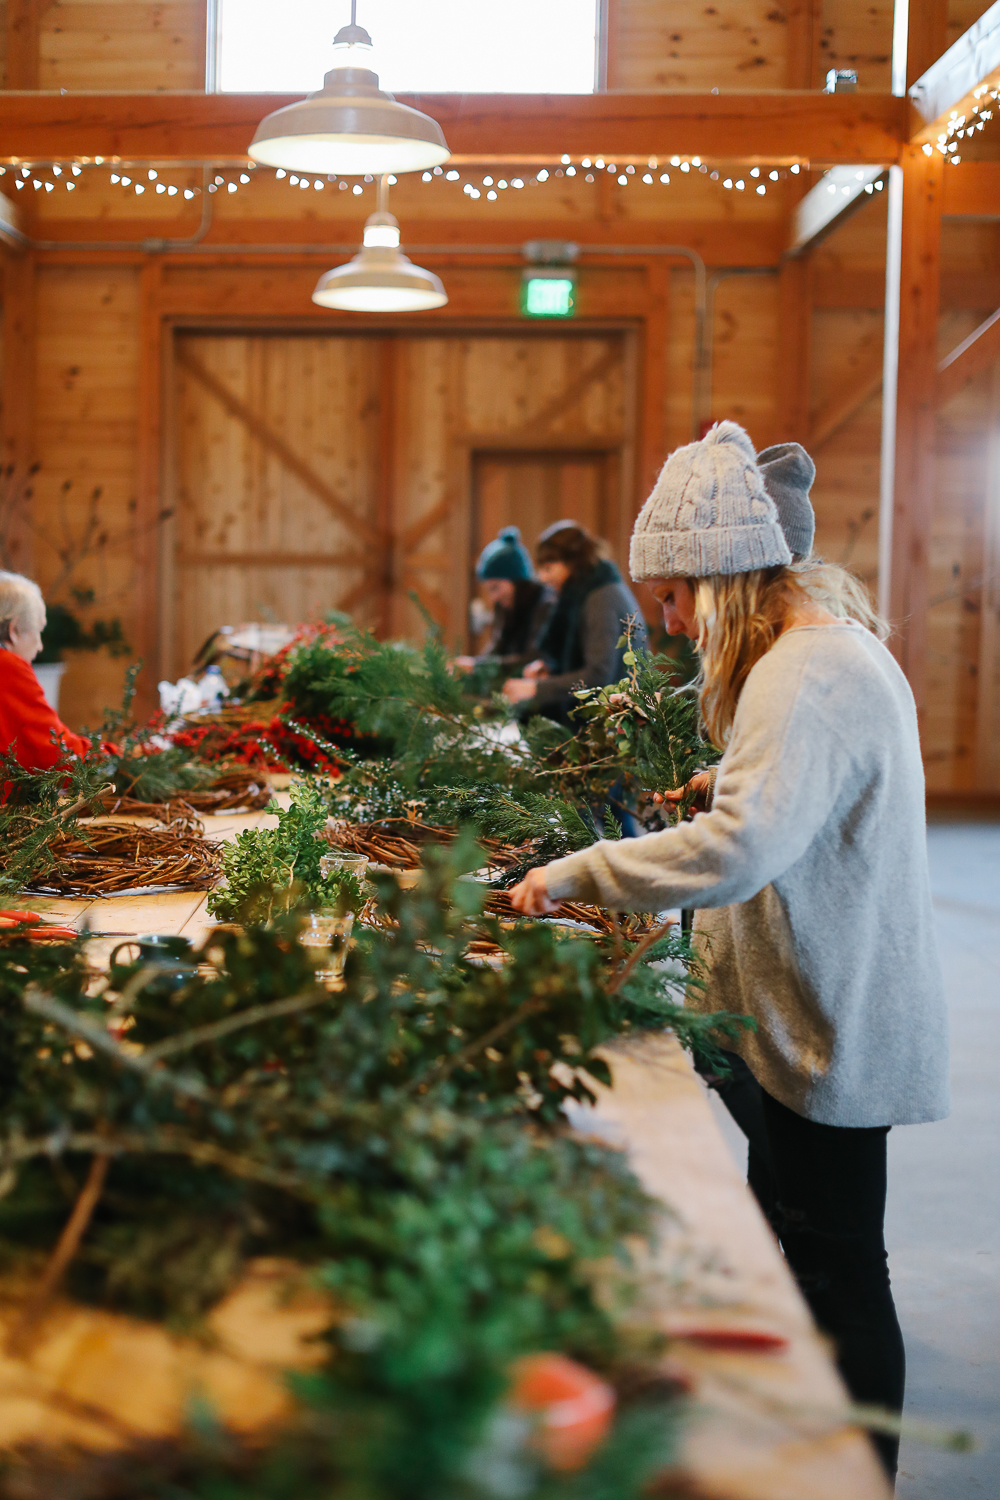 Wreath making!